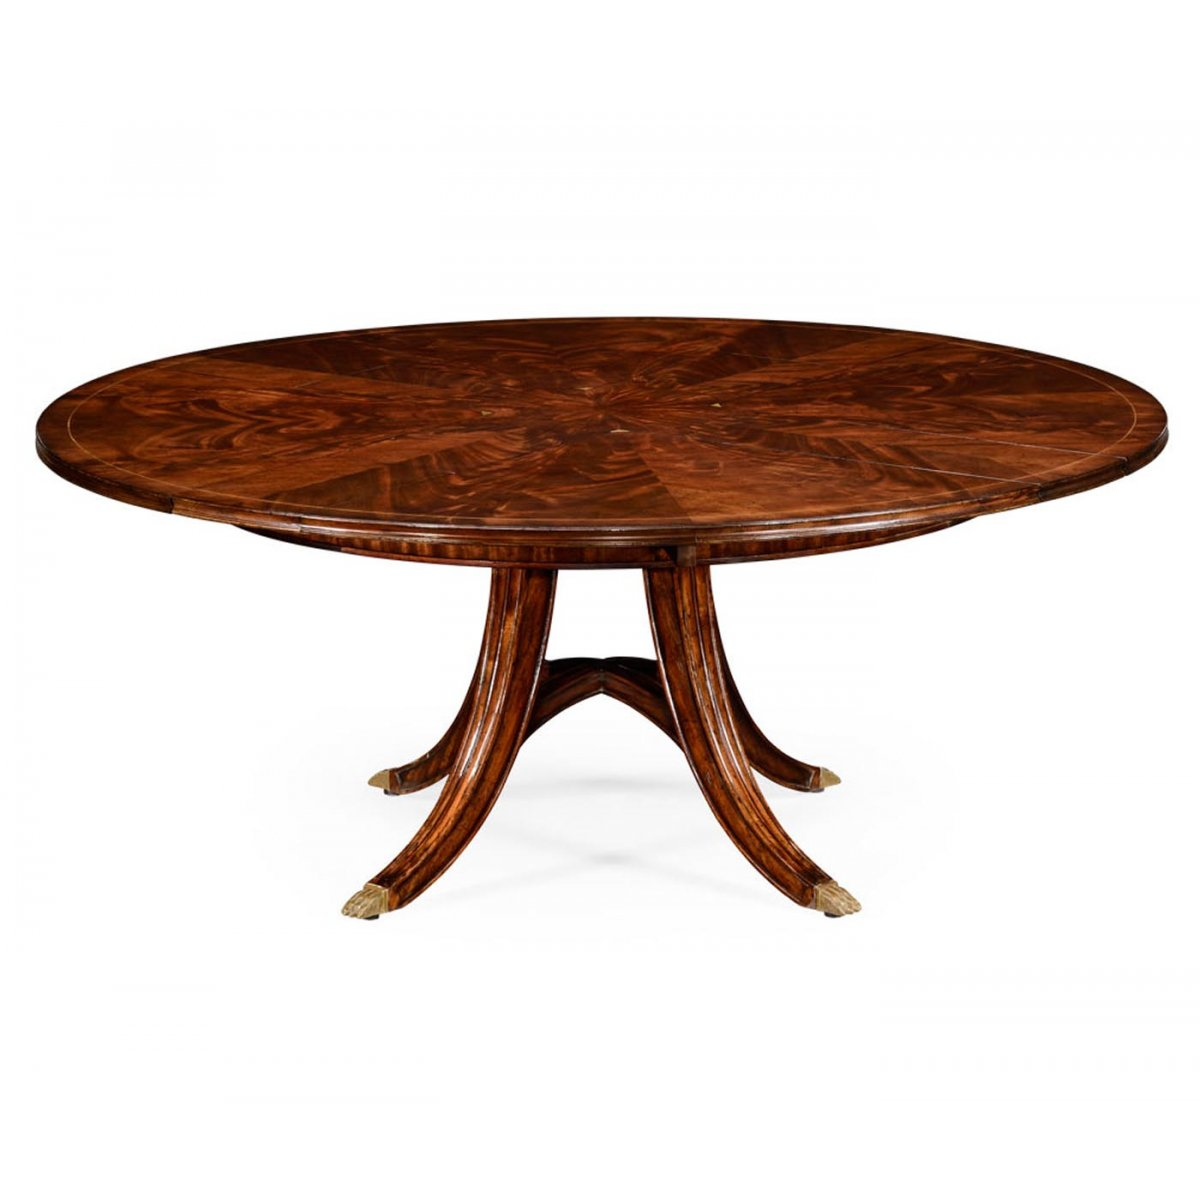 8 10 seater round extending dining table swanky interiors for 10 seater dining table uk